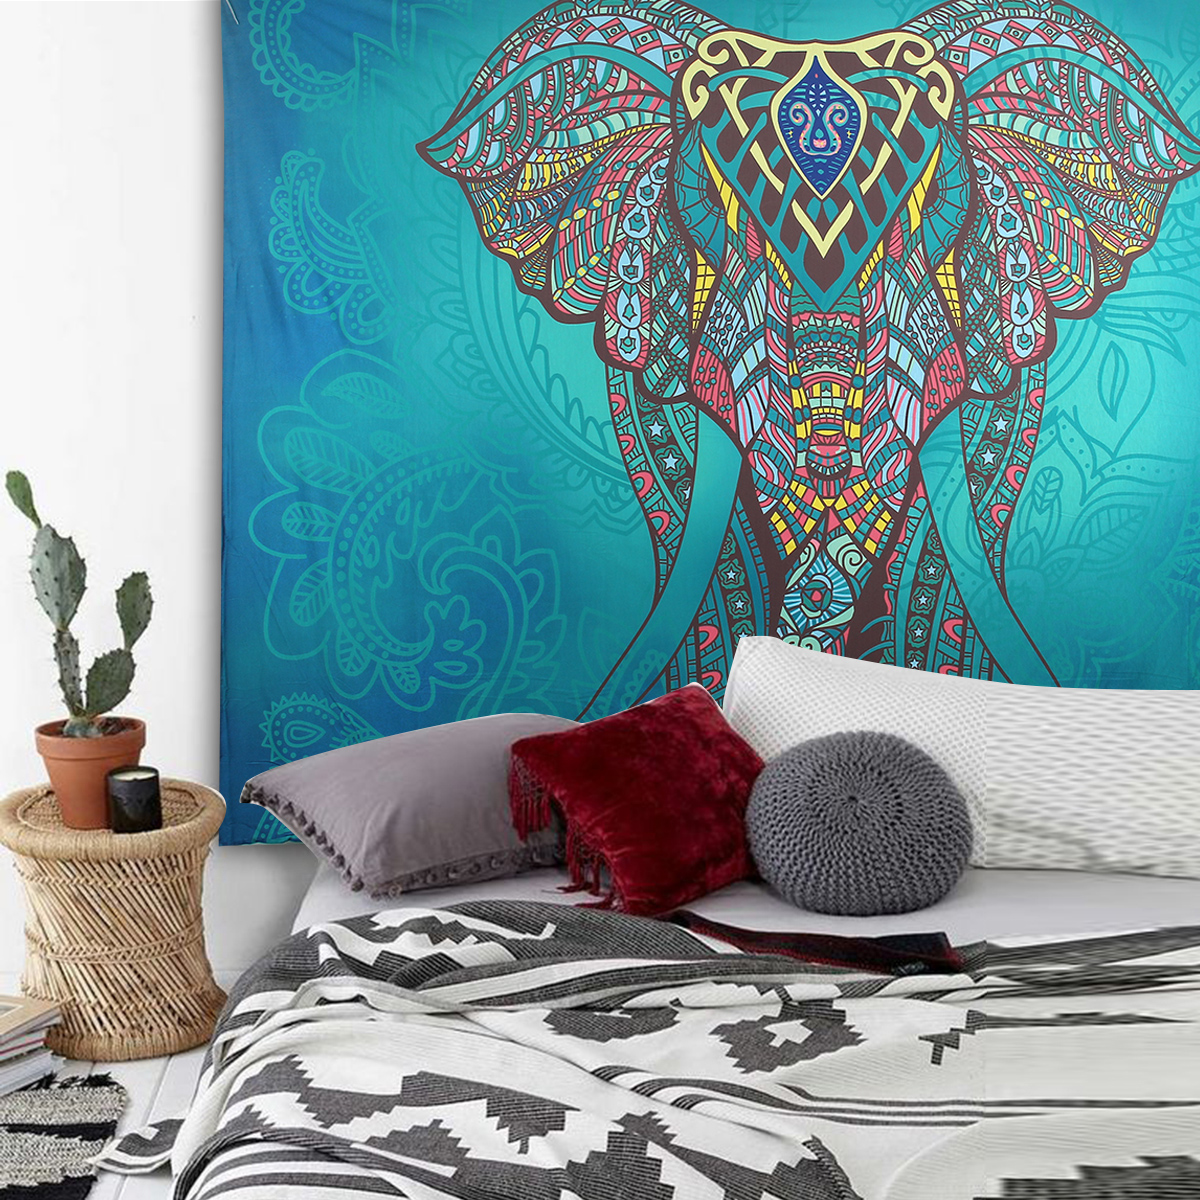 Elephant Mandala Tapestry Throw Towel Hippie Tapestry Floral Printed Home Decor Wall Tapestries Bedspread 210*150CM 9